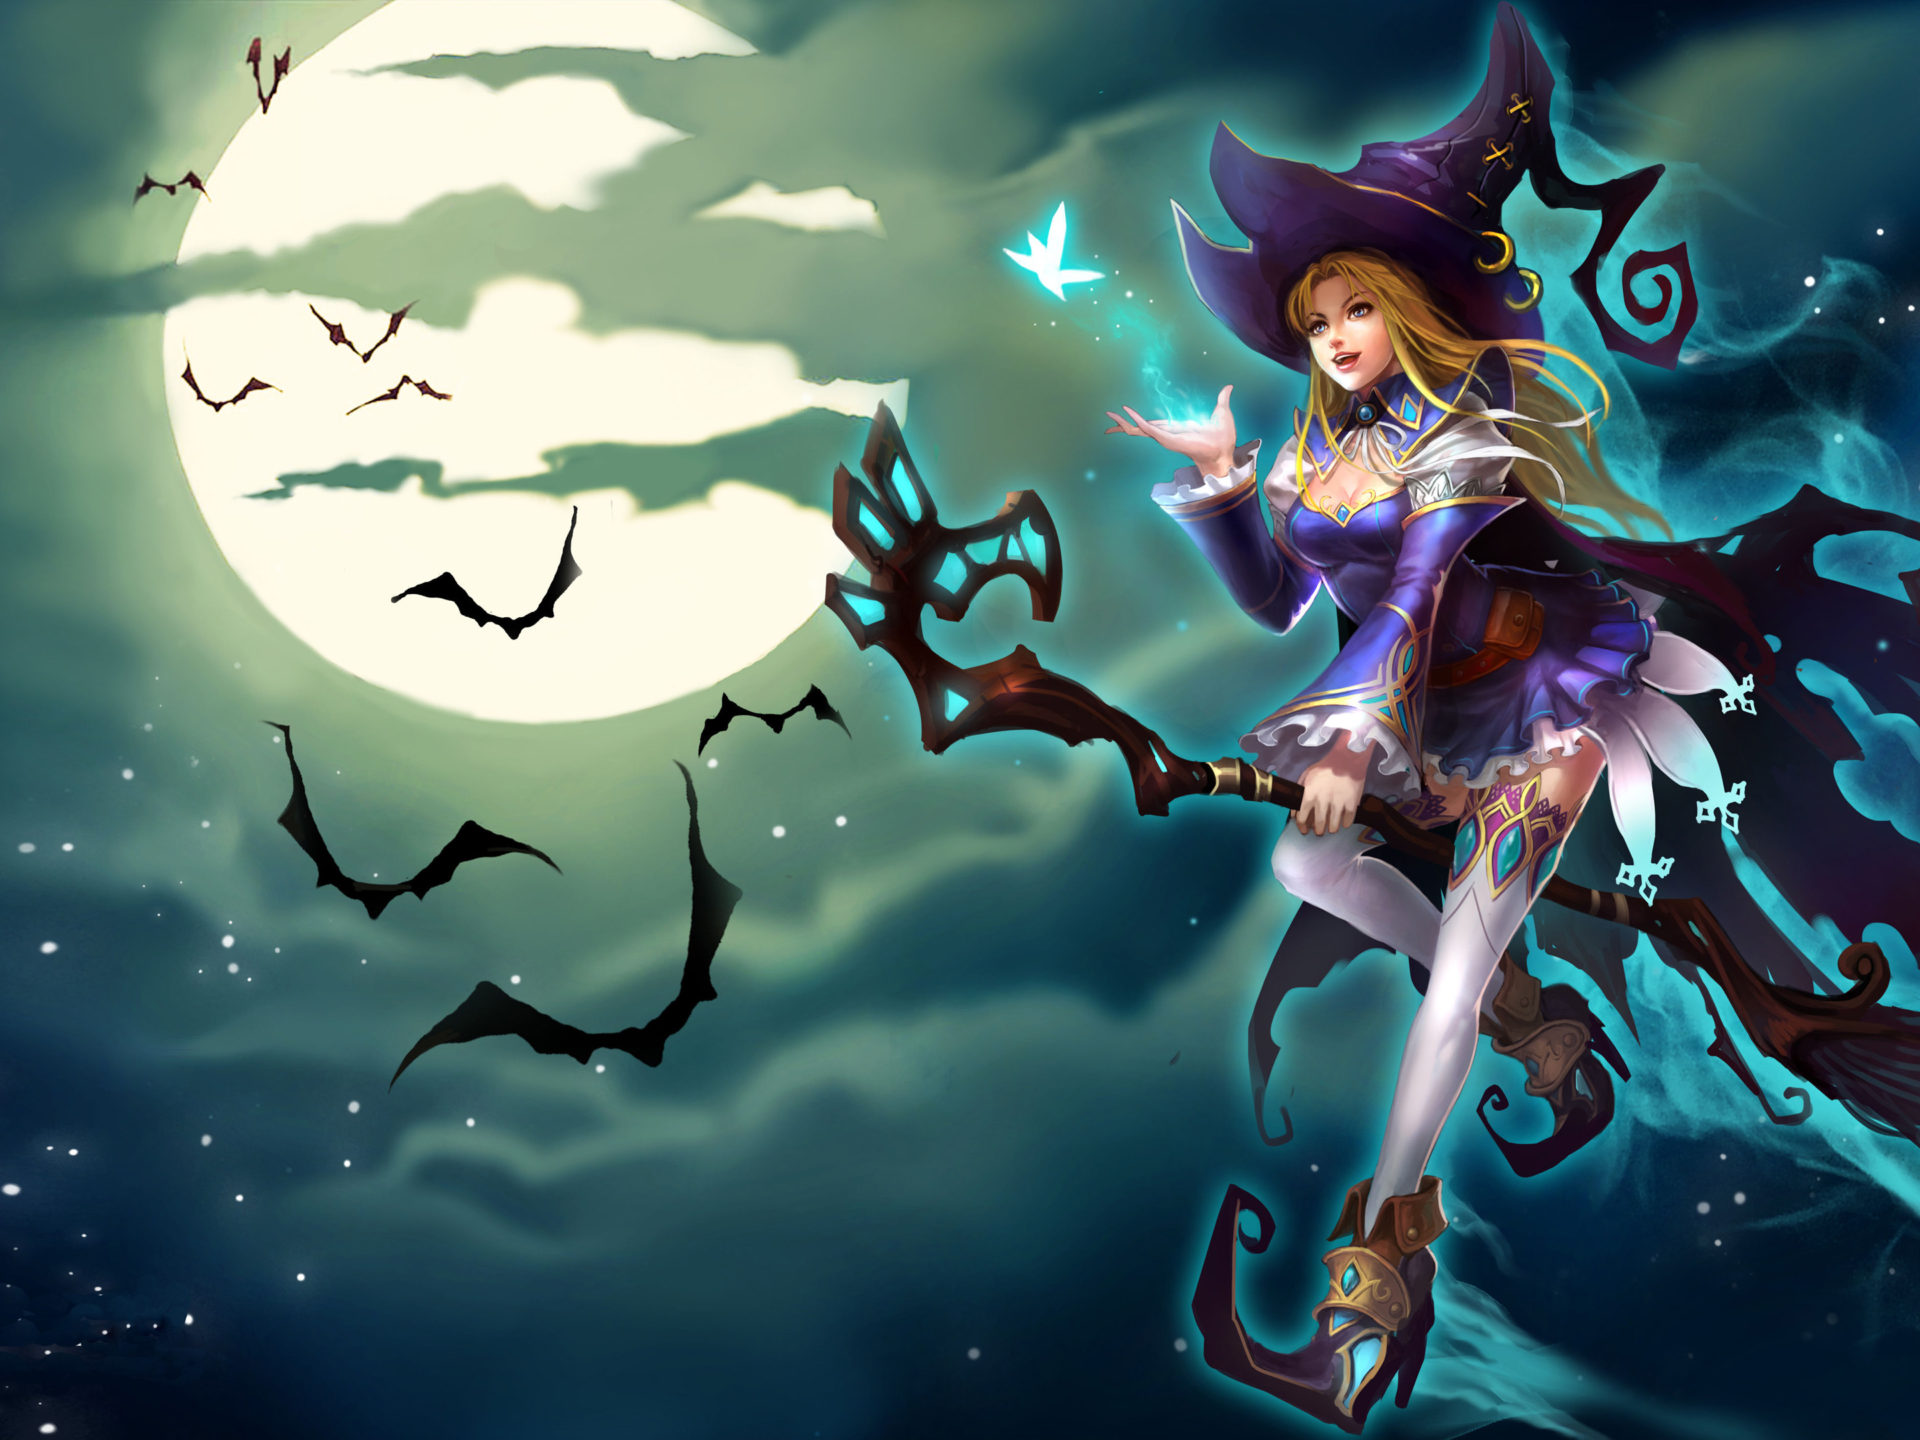 Pin Up Girl Wallpaper Hd Sally Blue Witch Riding A Broom League Of Angels Game